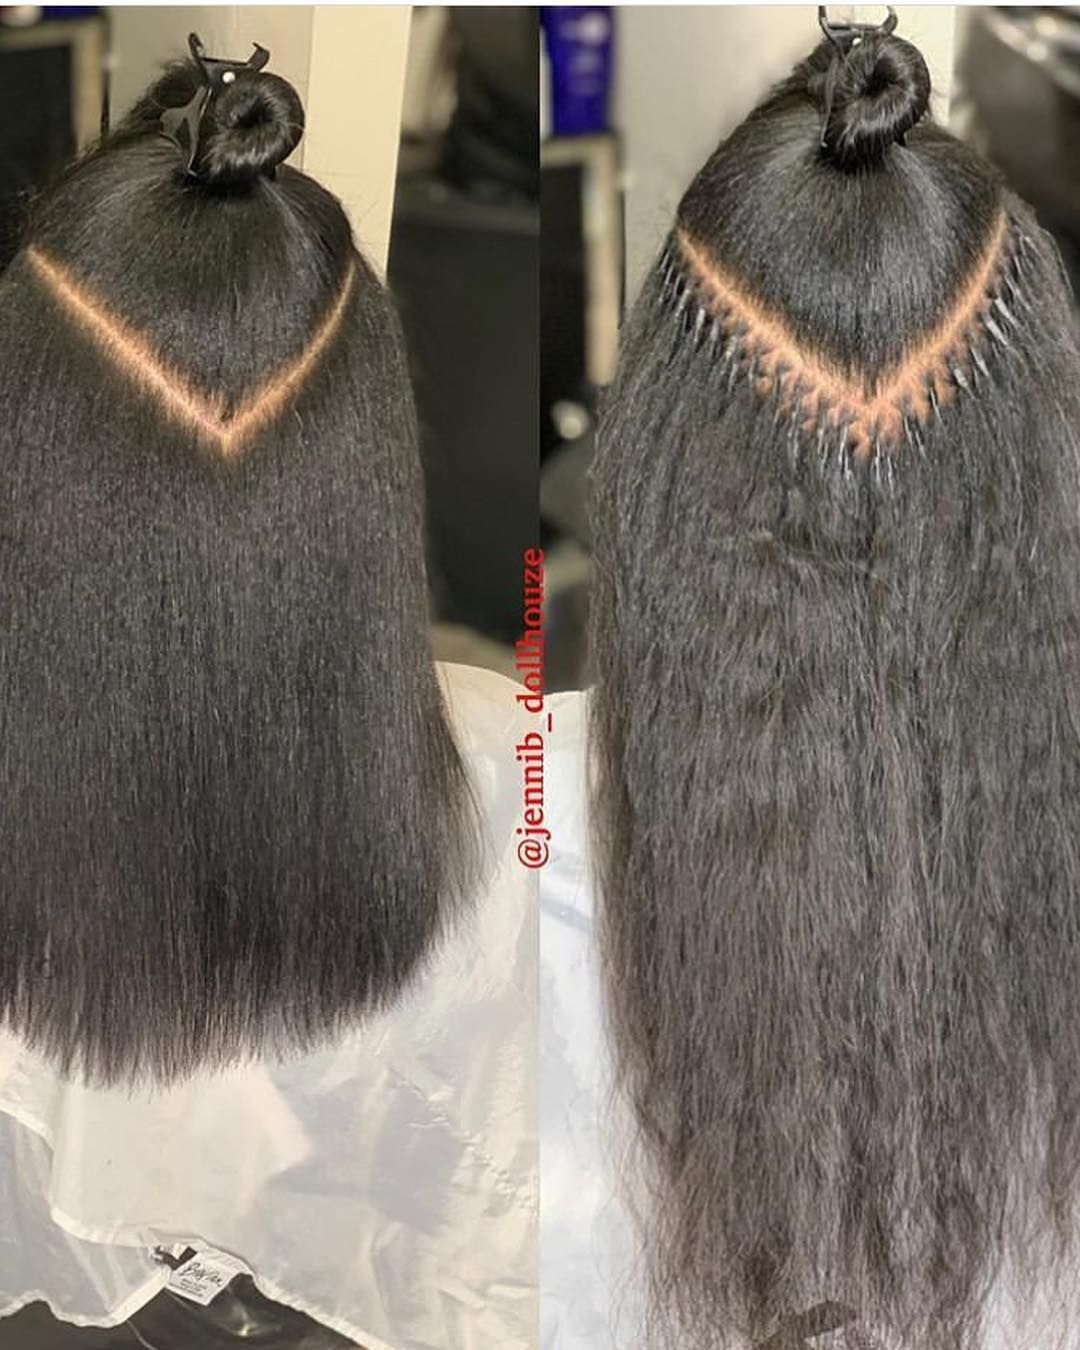 We Started To Become Obsessed With Microlinks Jennib Dollhouze Naturalhairstyles Silkpres Black Hair Extensions Microlink Hair Extensions Fusion Hair